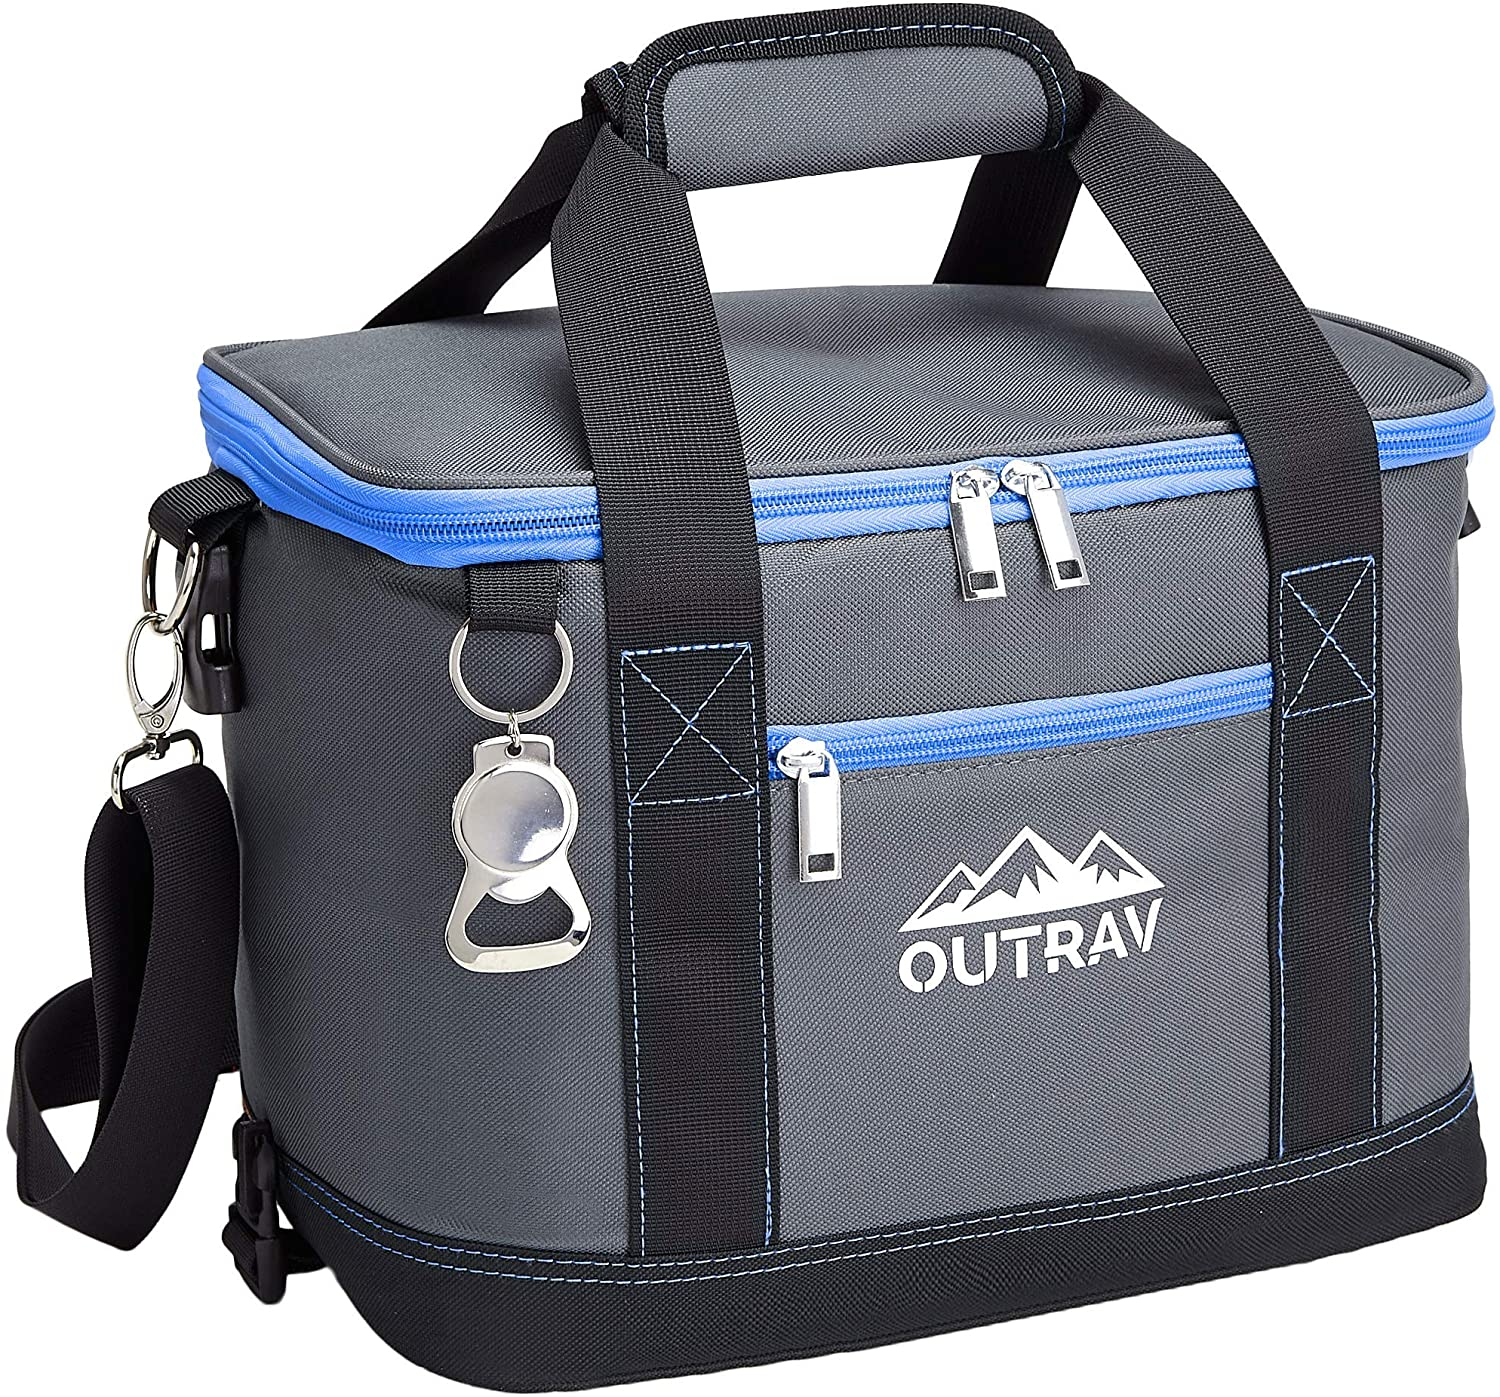 Collapsible Insulated At the price of surprise safety Cooler Bag – Lunch wit Thermal 6L